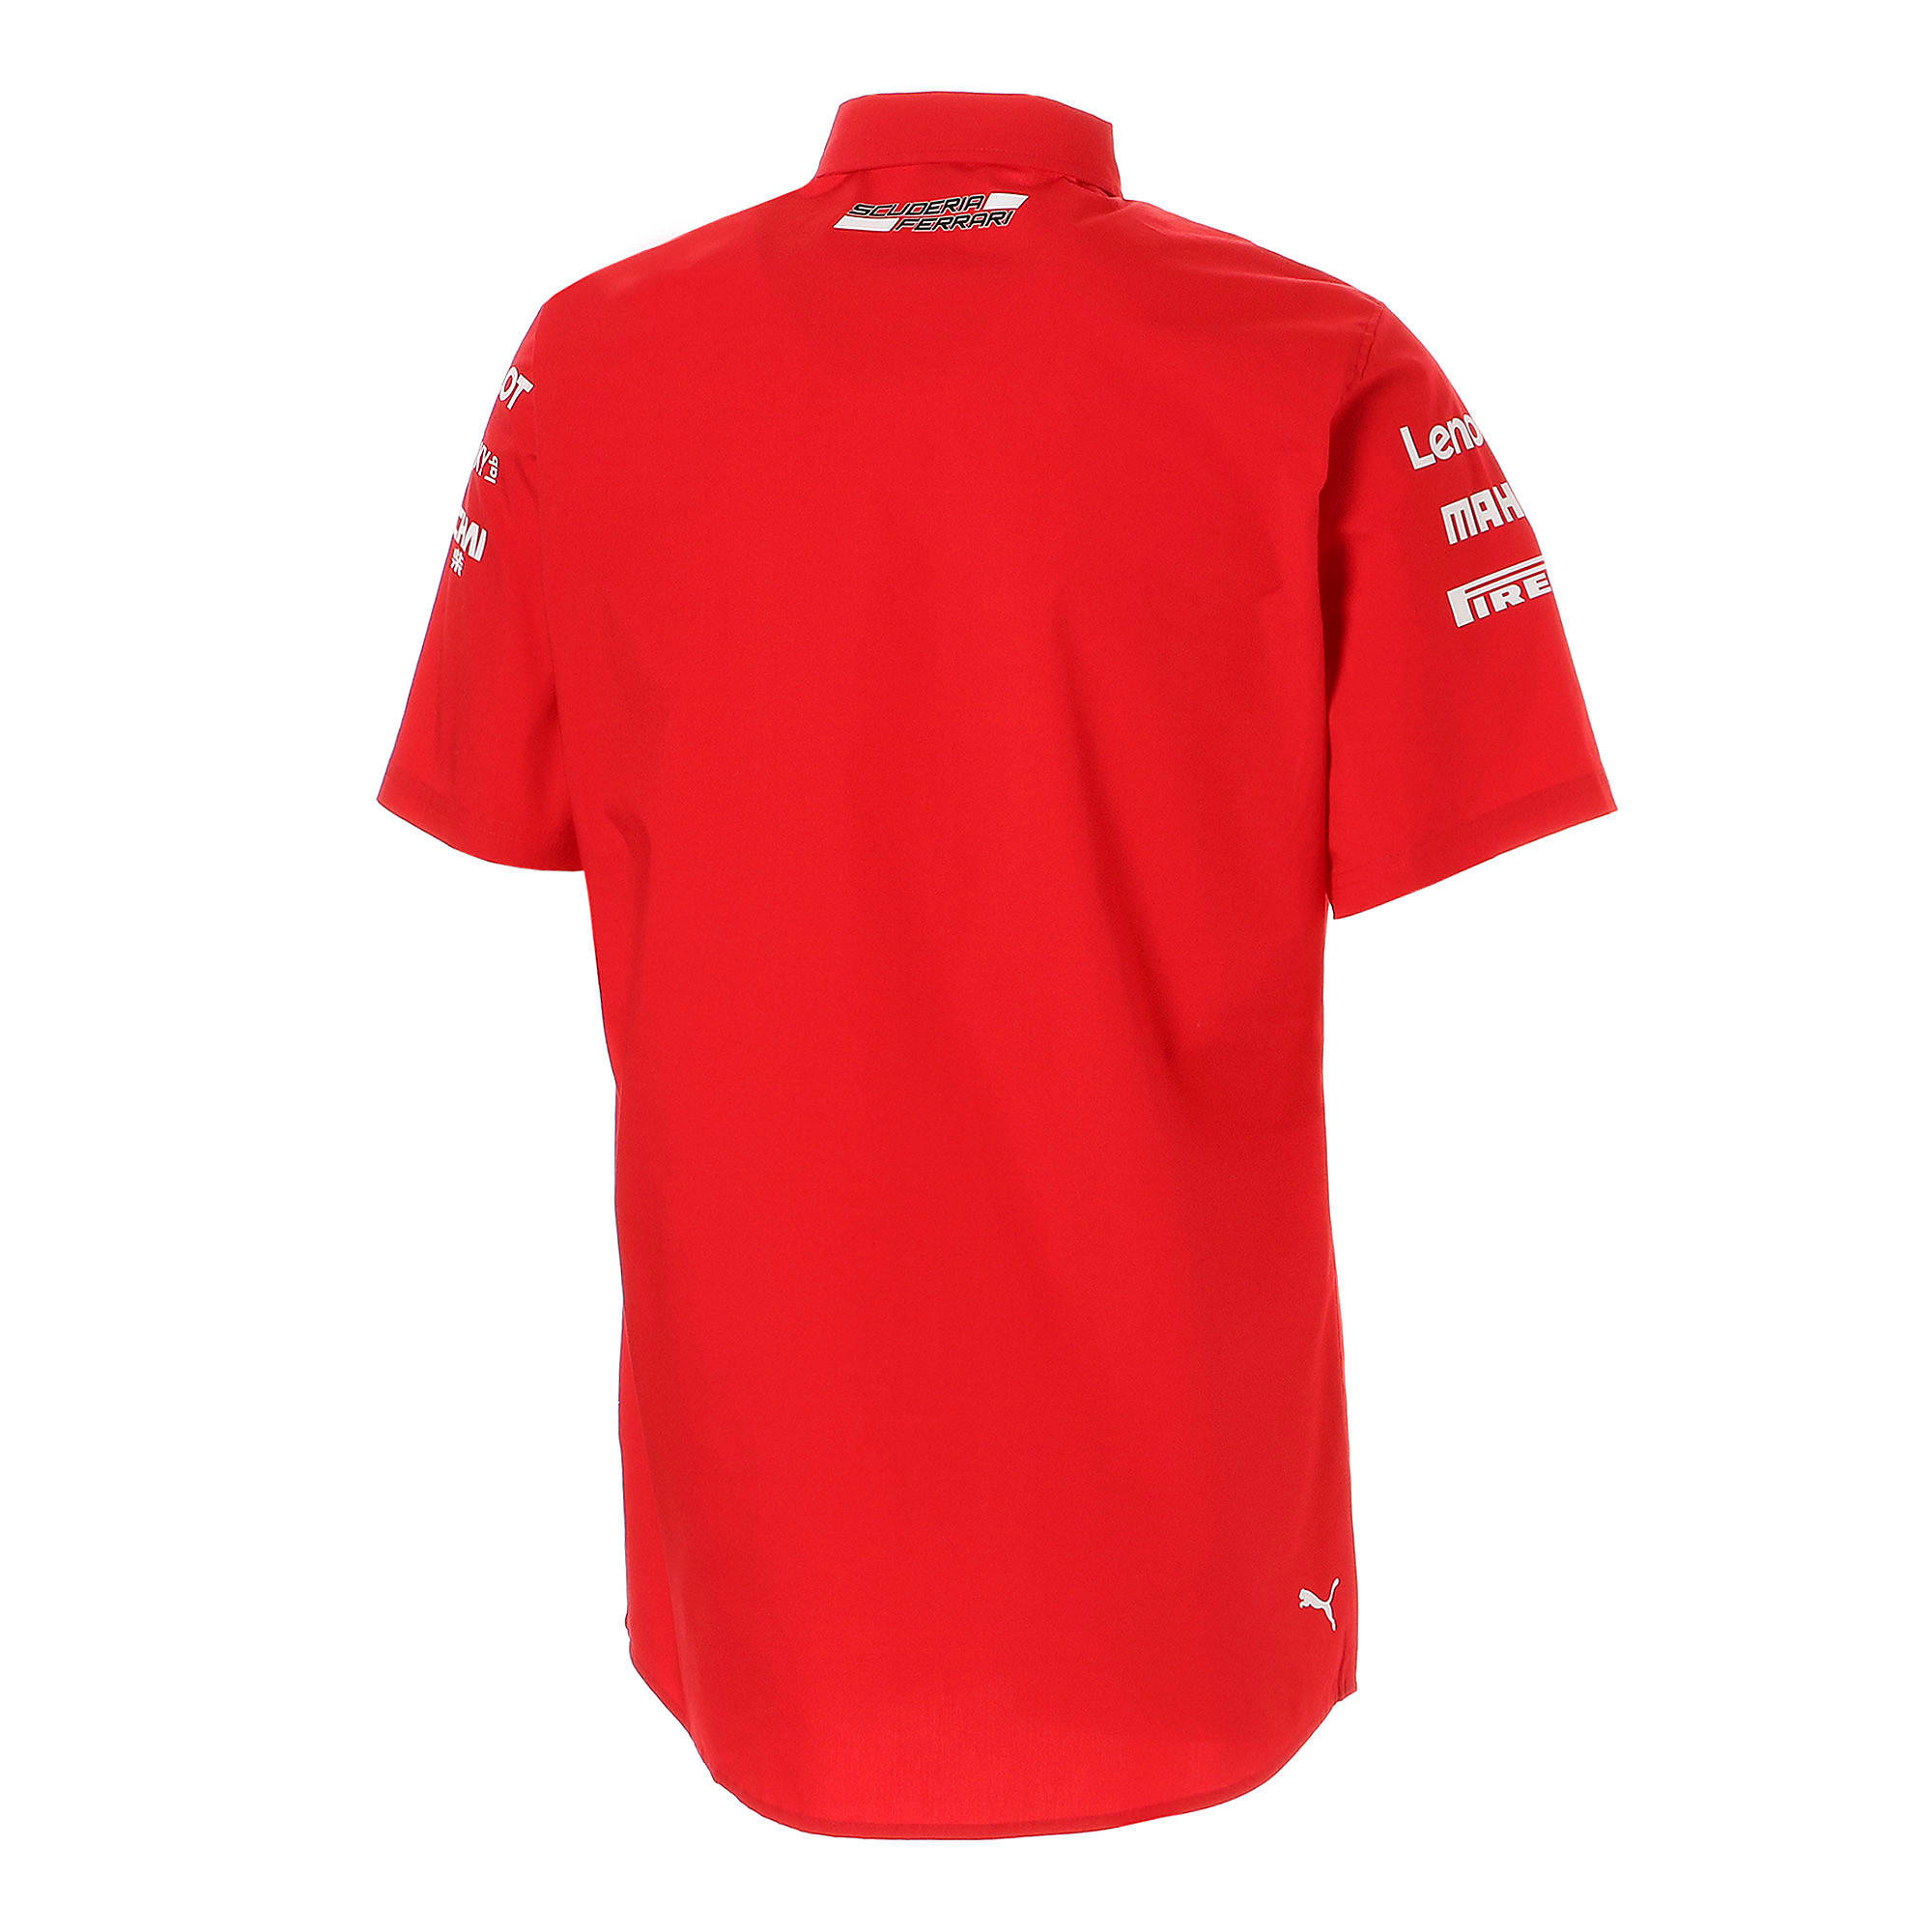 Thumbnail 3 of フェラーリ SF チーム シャツ, Rosso Corsa-without MW Logo, medium-JPN